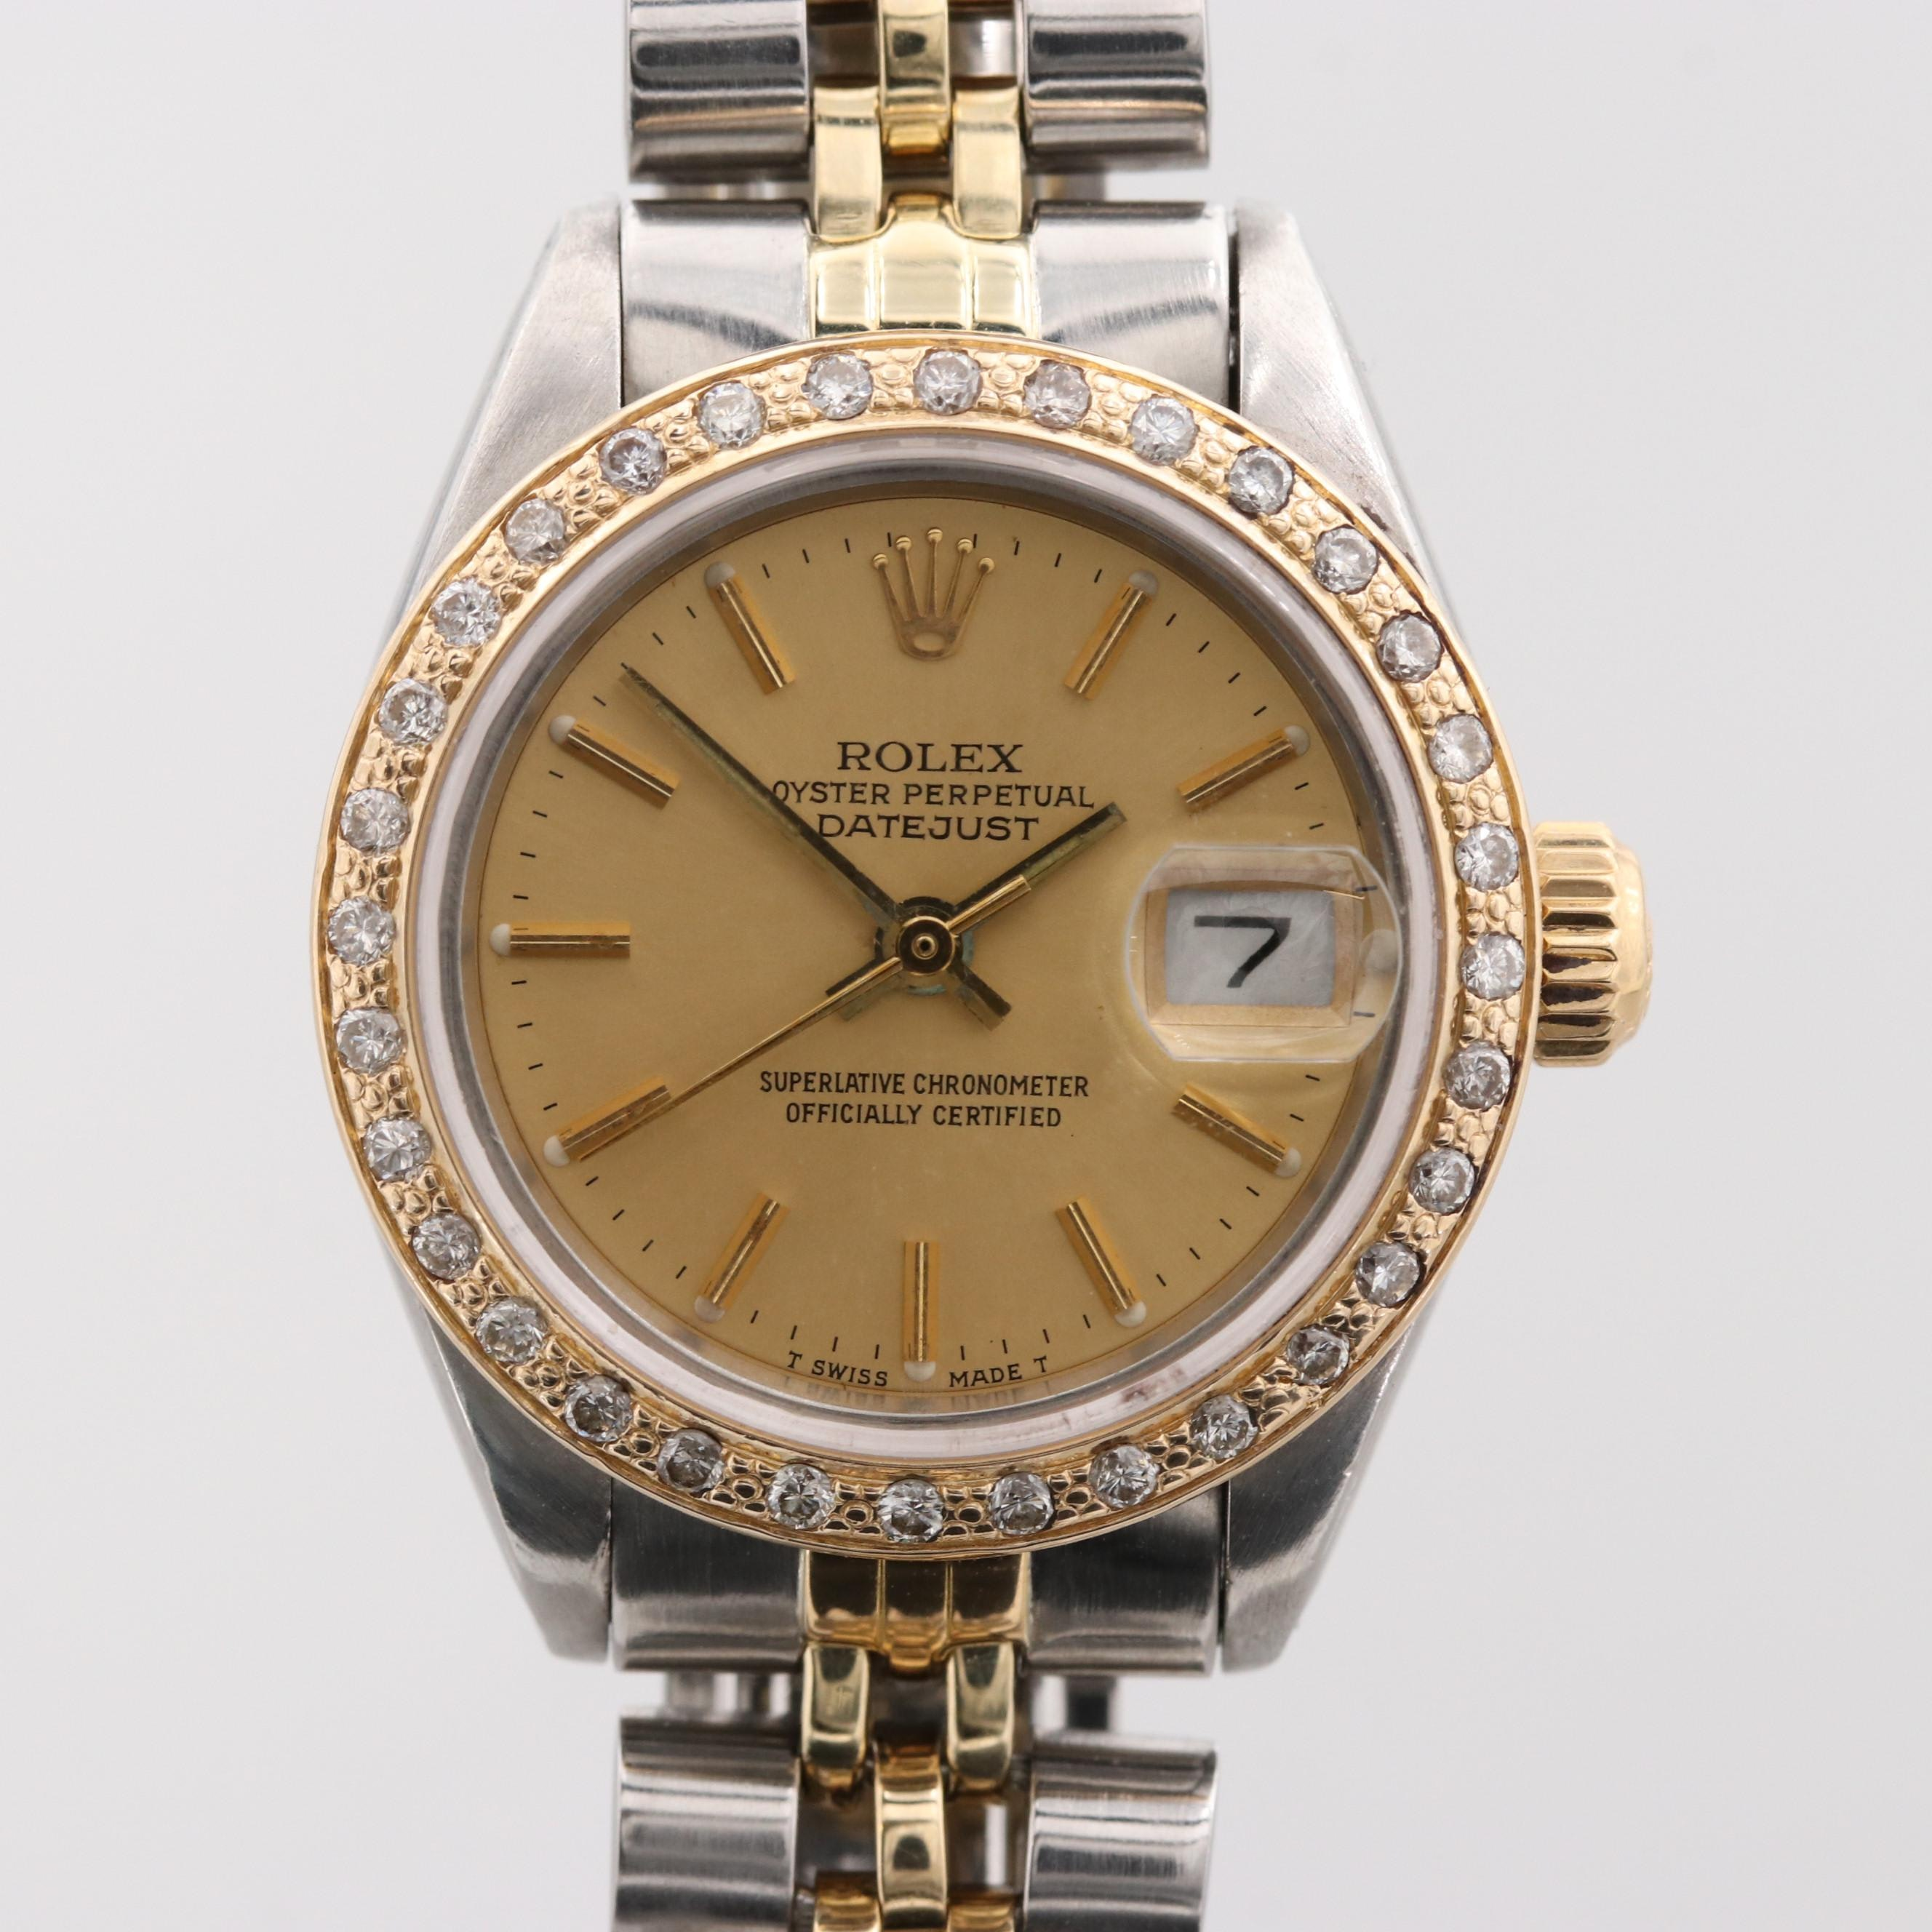 Vintage Rolex Datejust Stainless Steel and 14K Yellow Gold Wristwatch